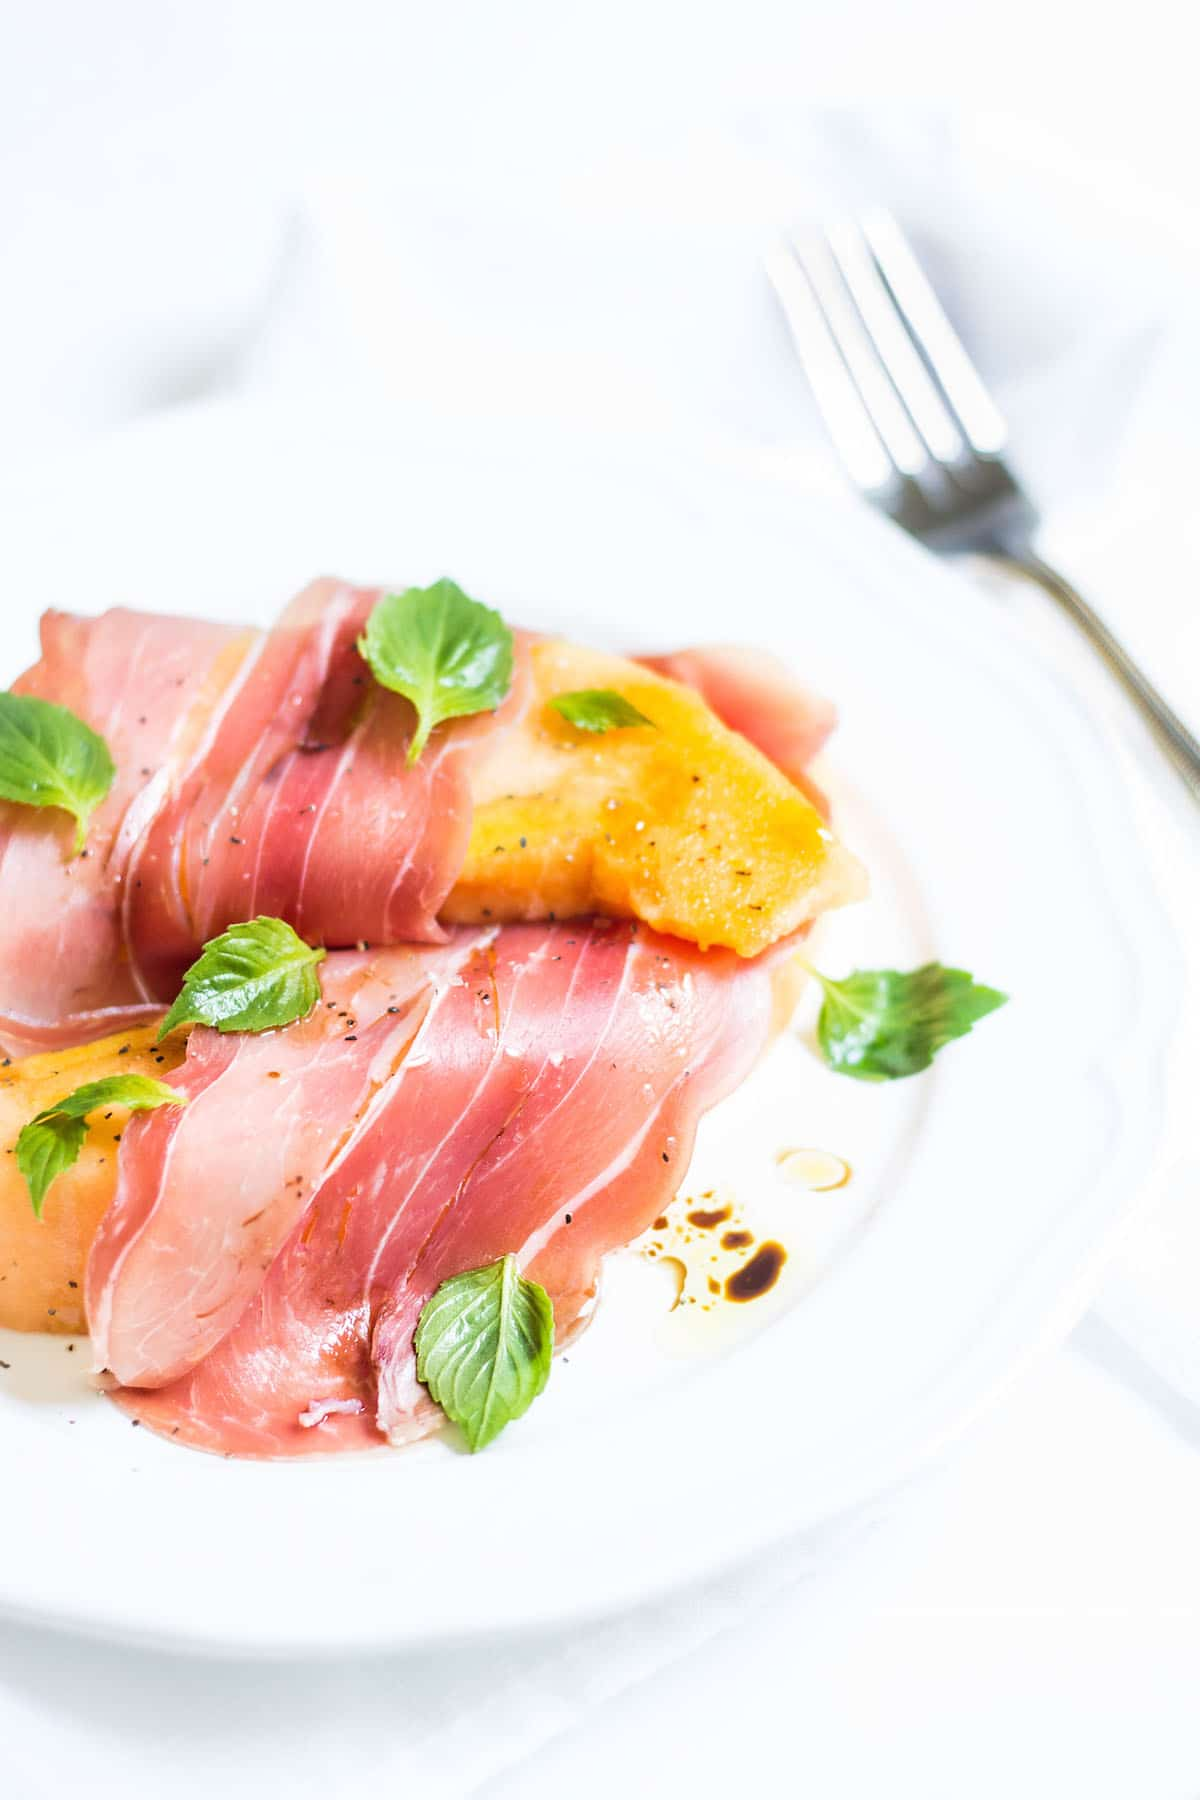 Healthy Summer Dinner Recipes - Prosciutto Melon Salad